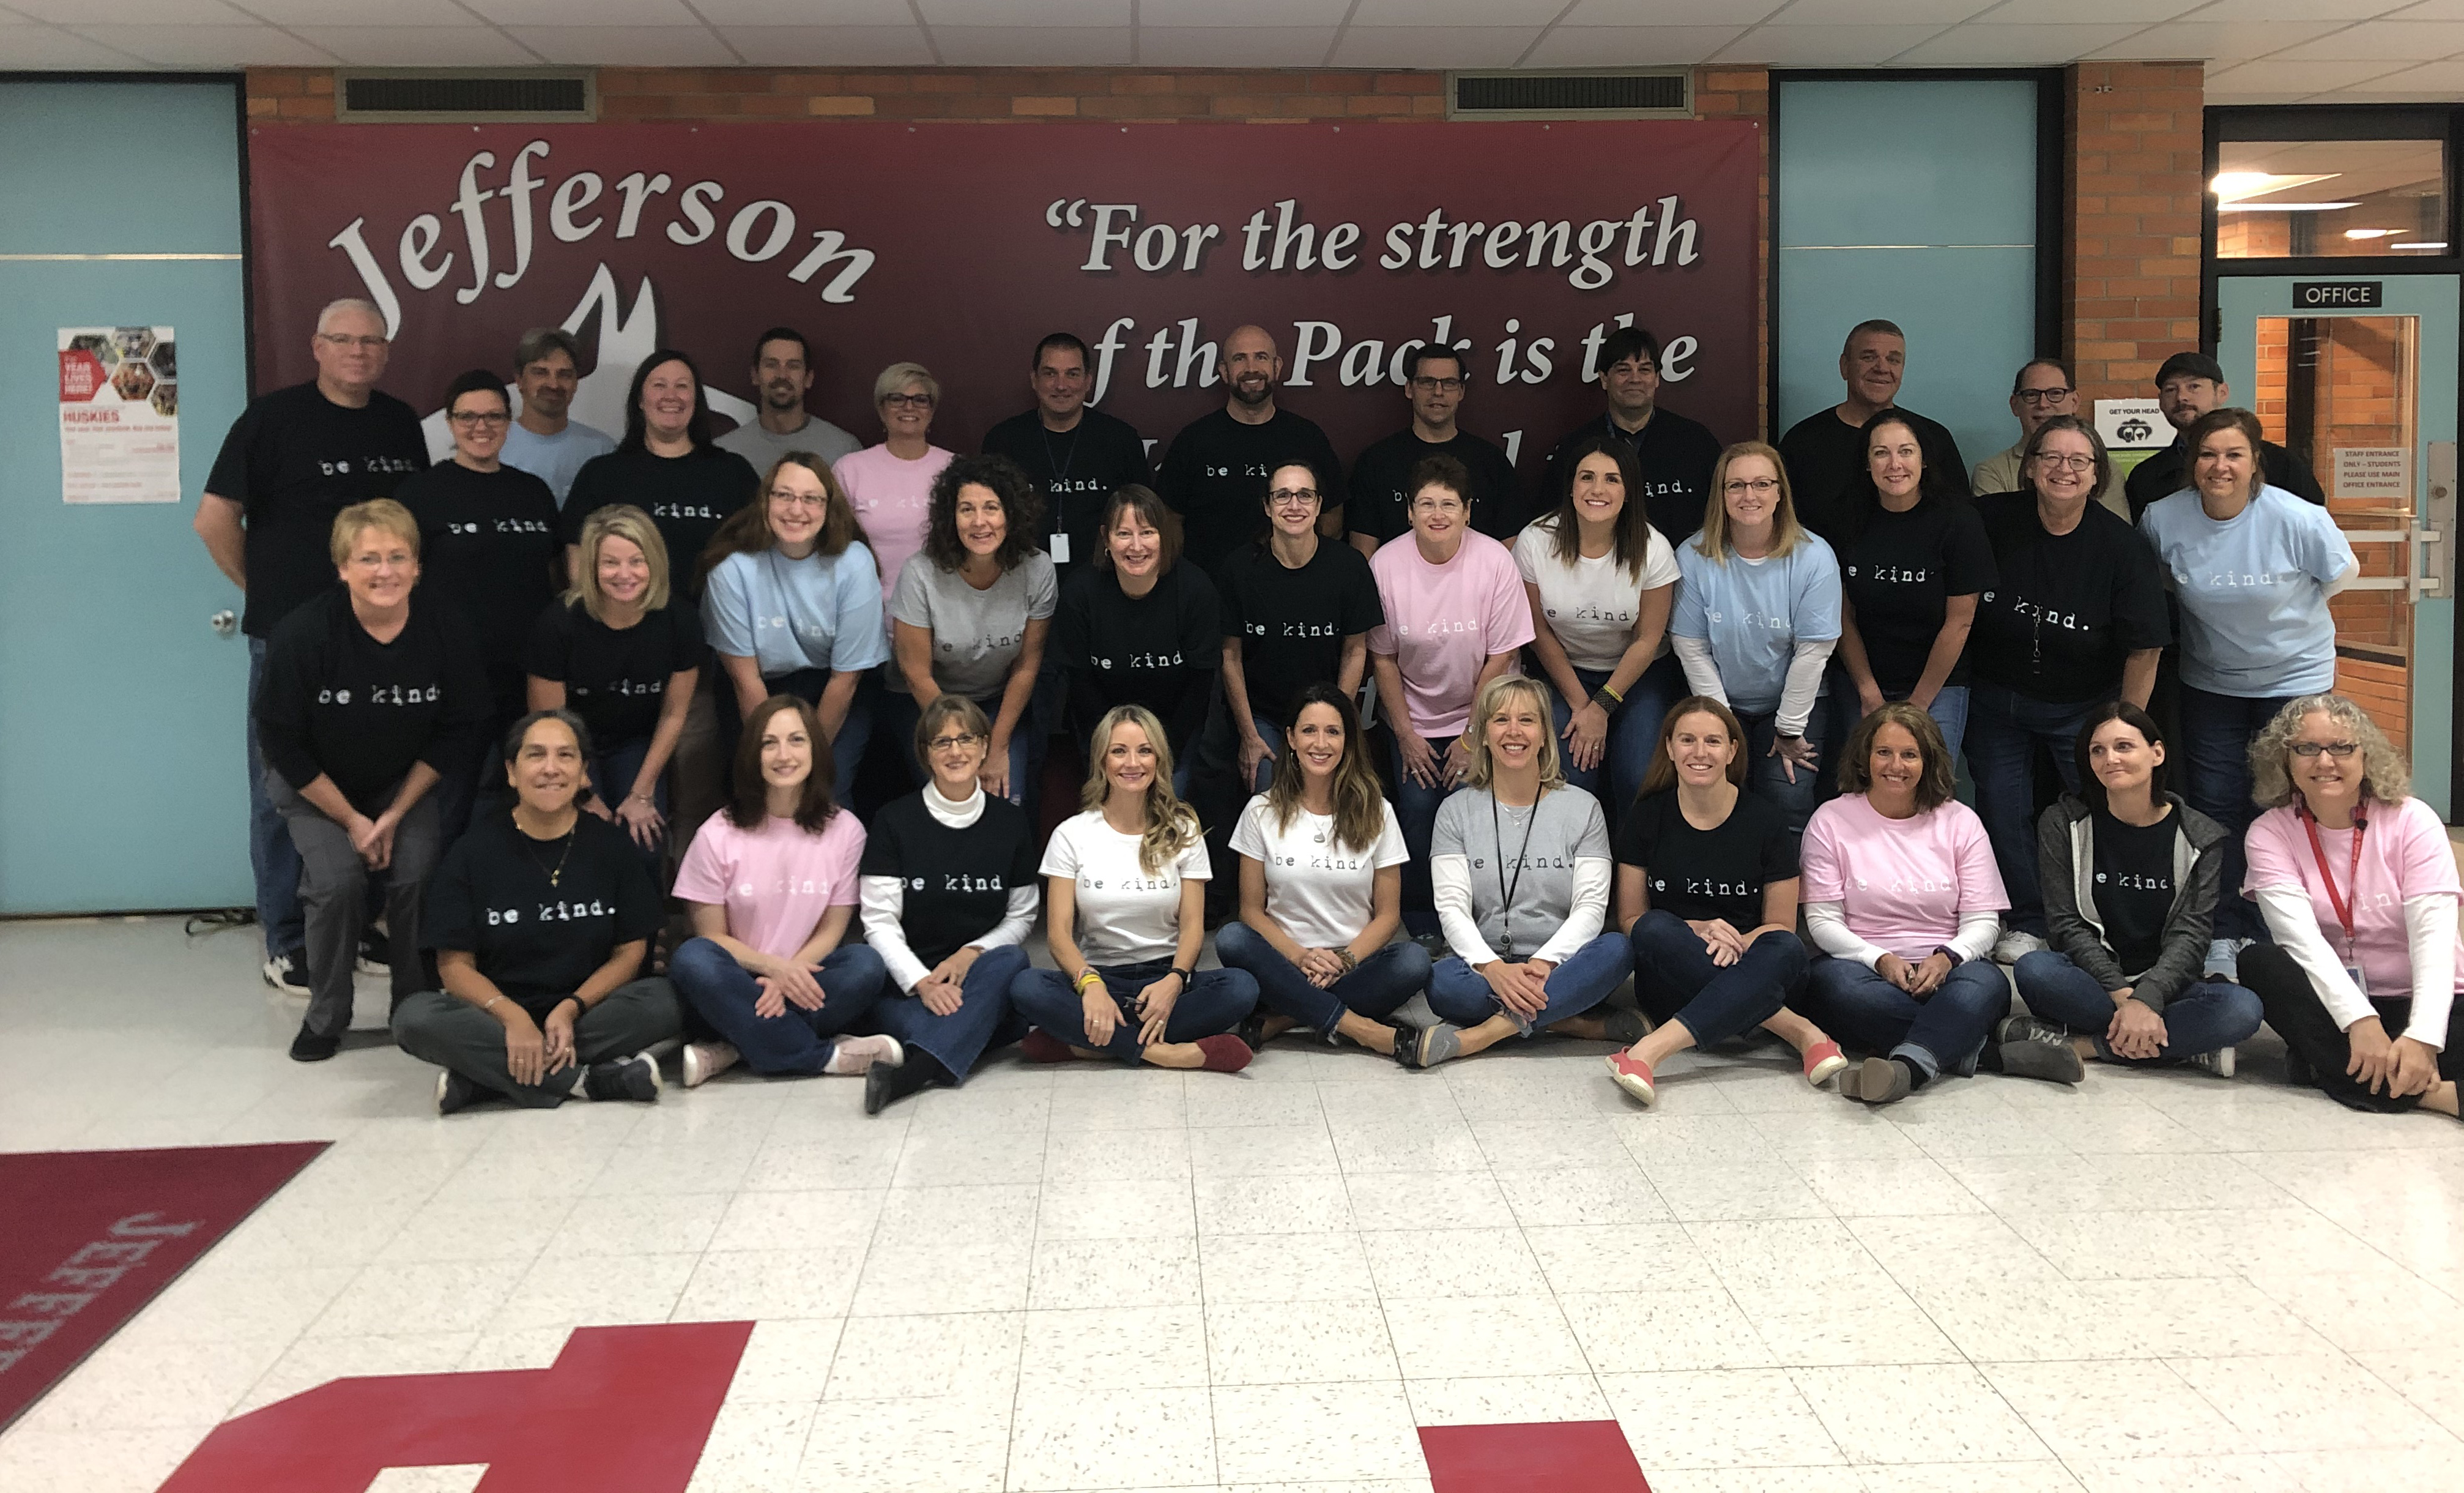 Staff at Jefferson Being Kind